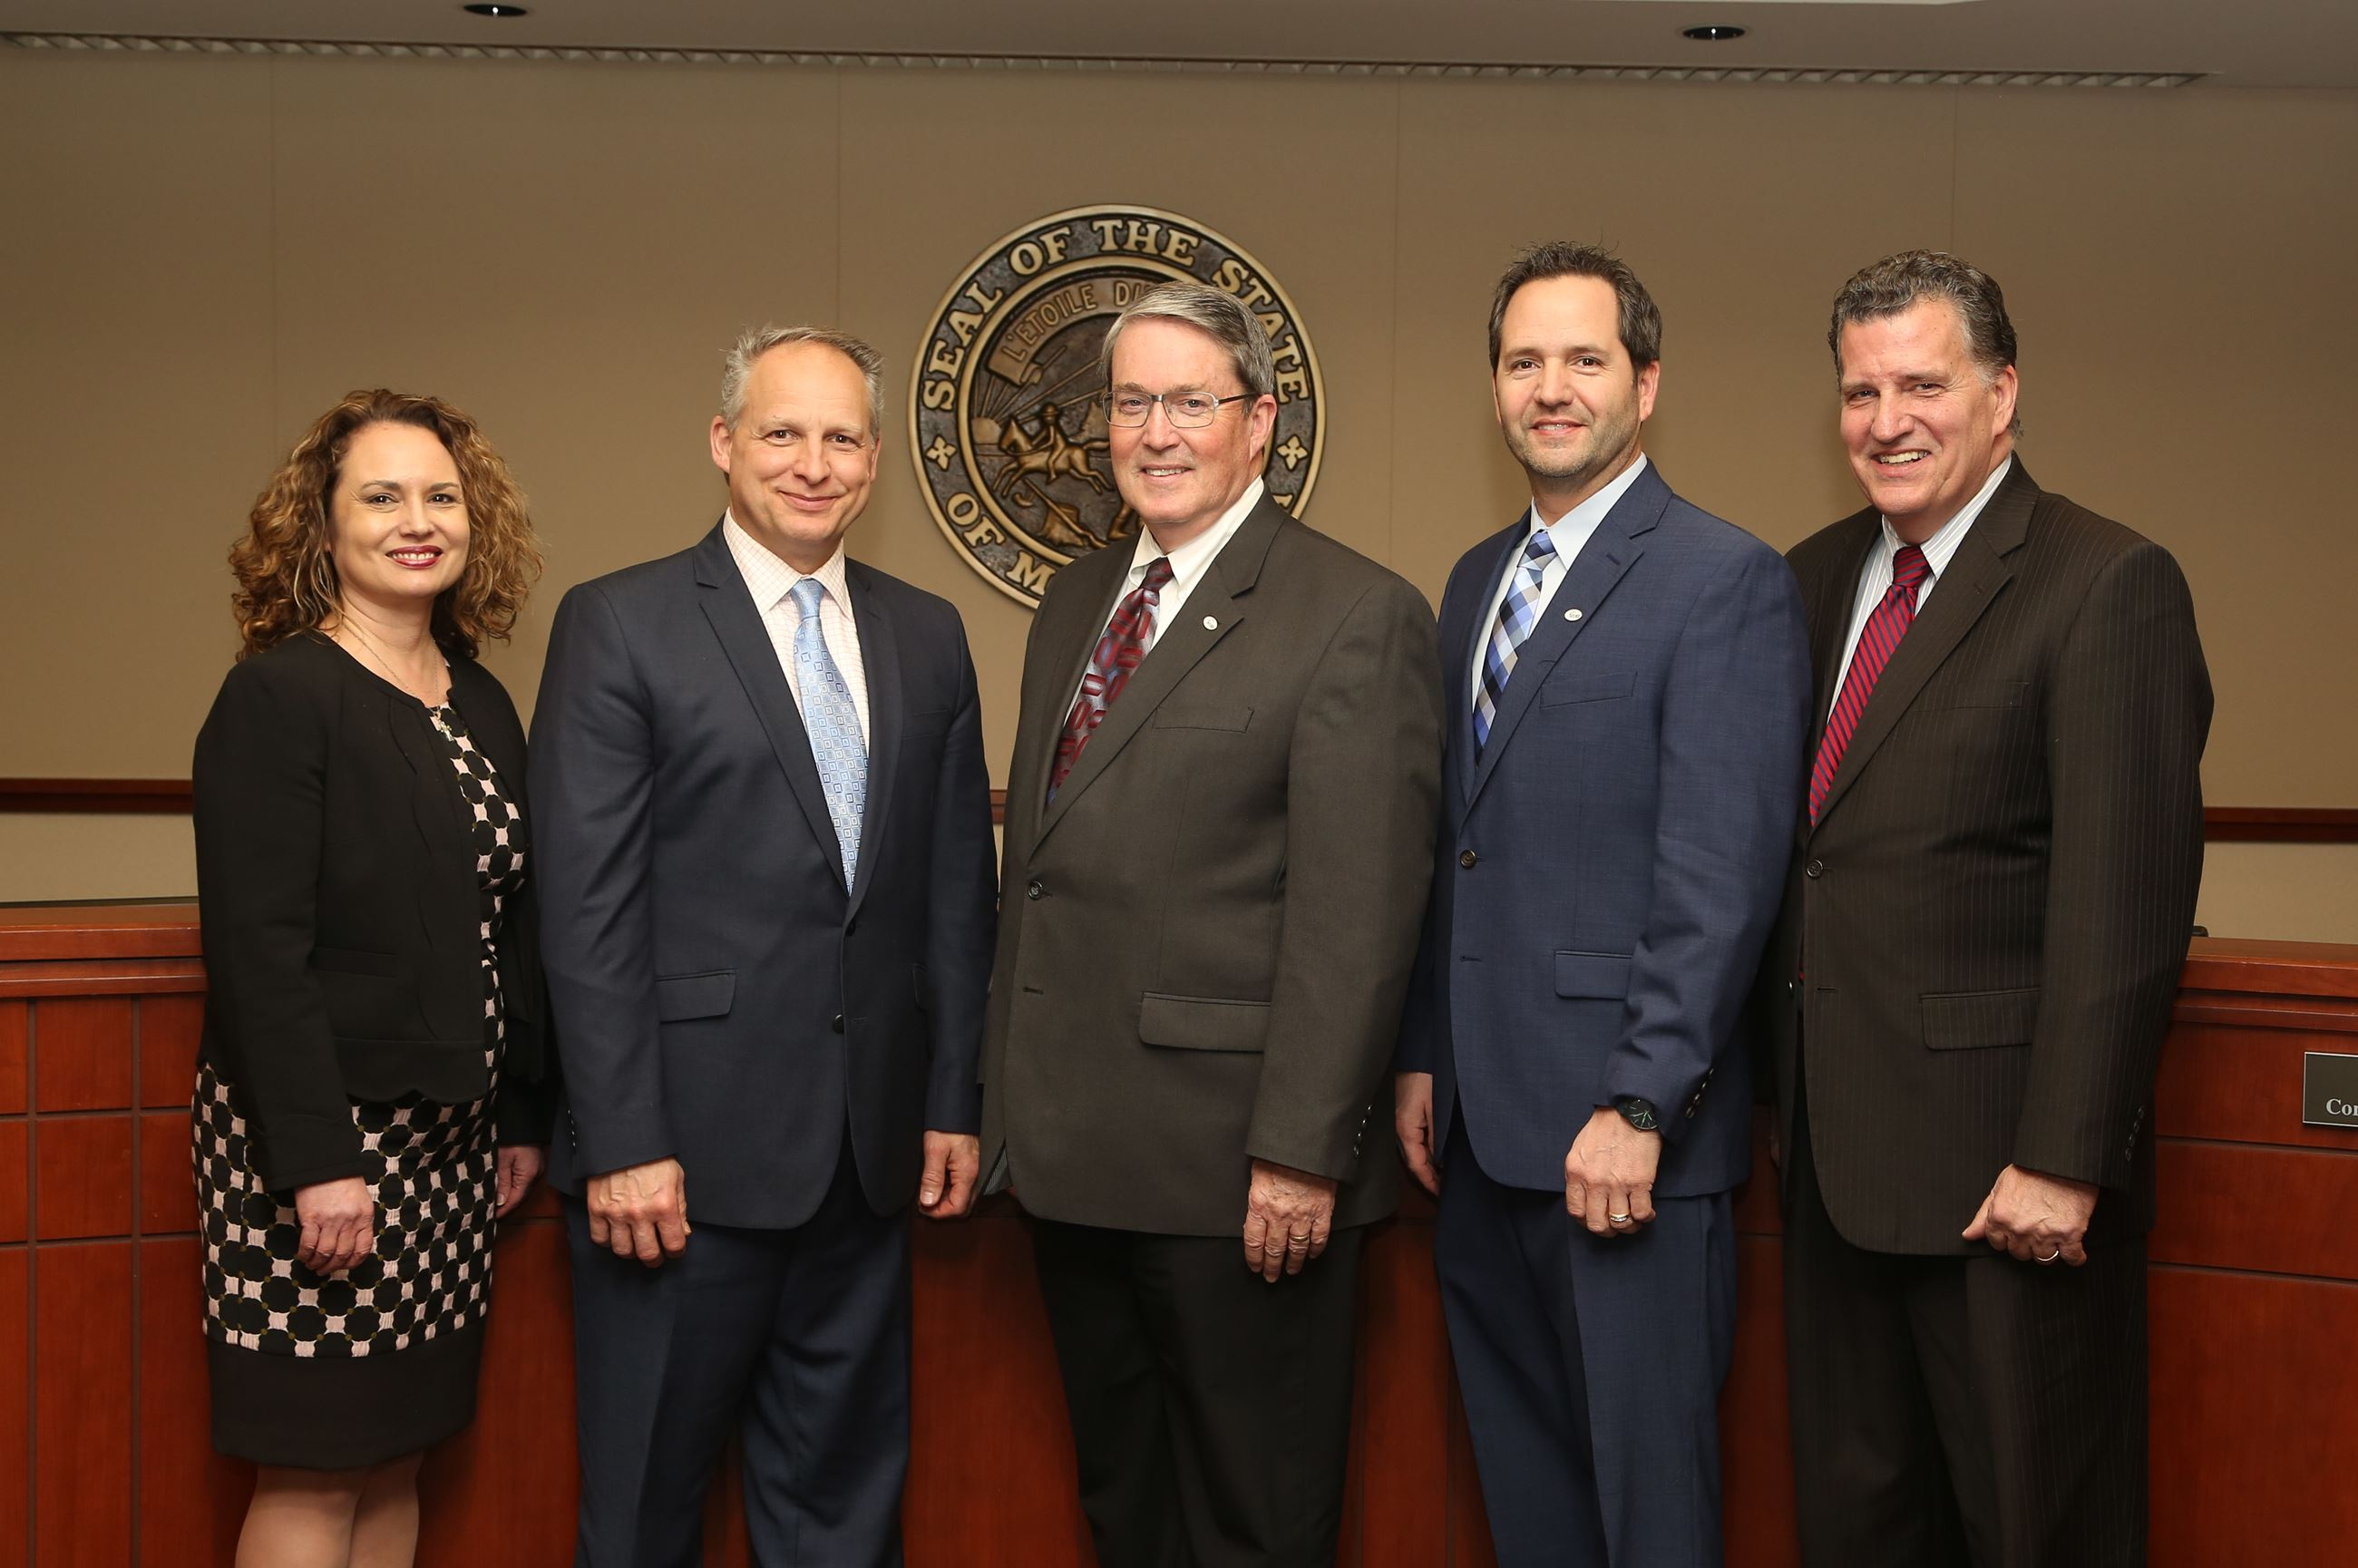 2017 Scott County Board of Commissioners